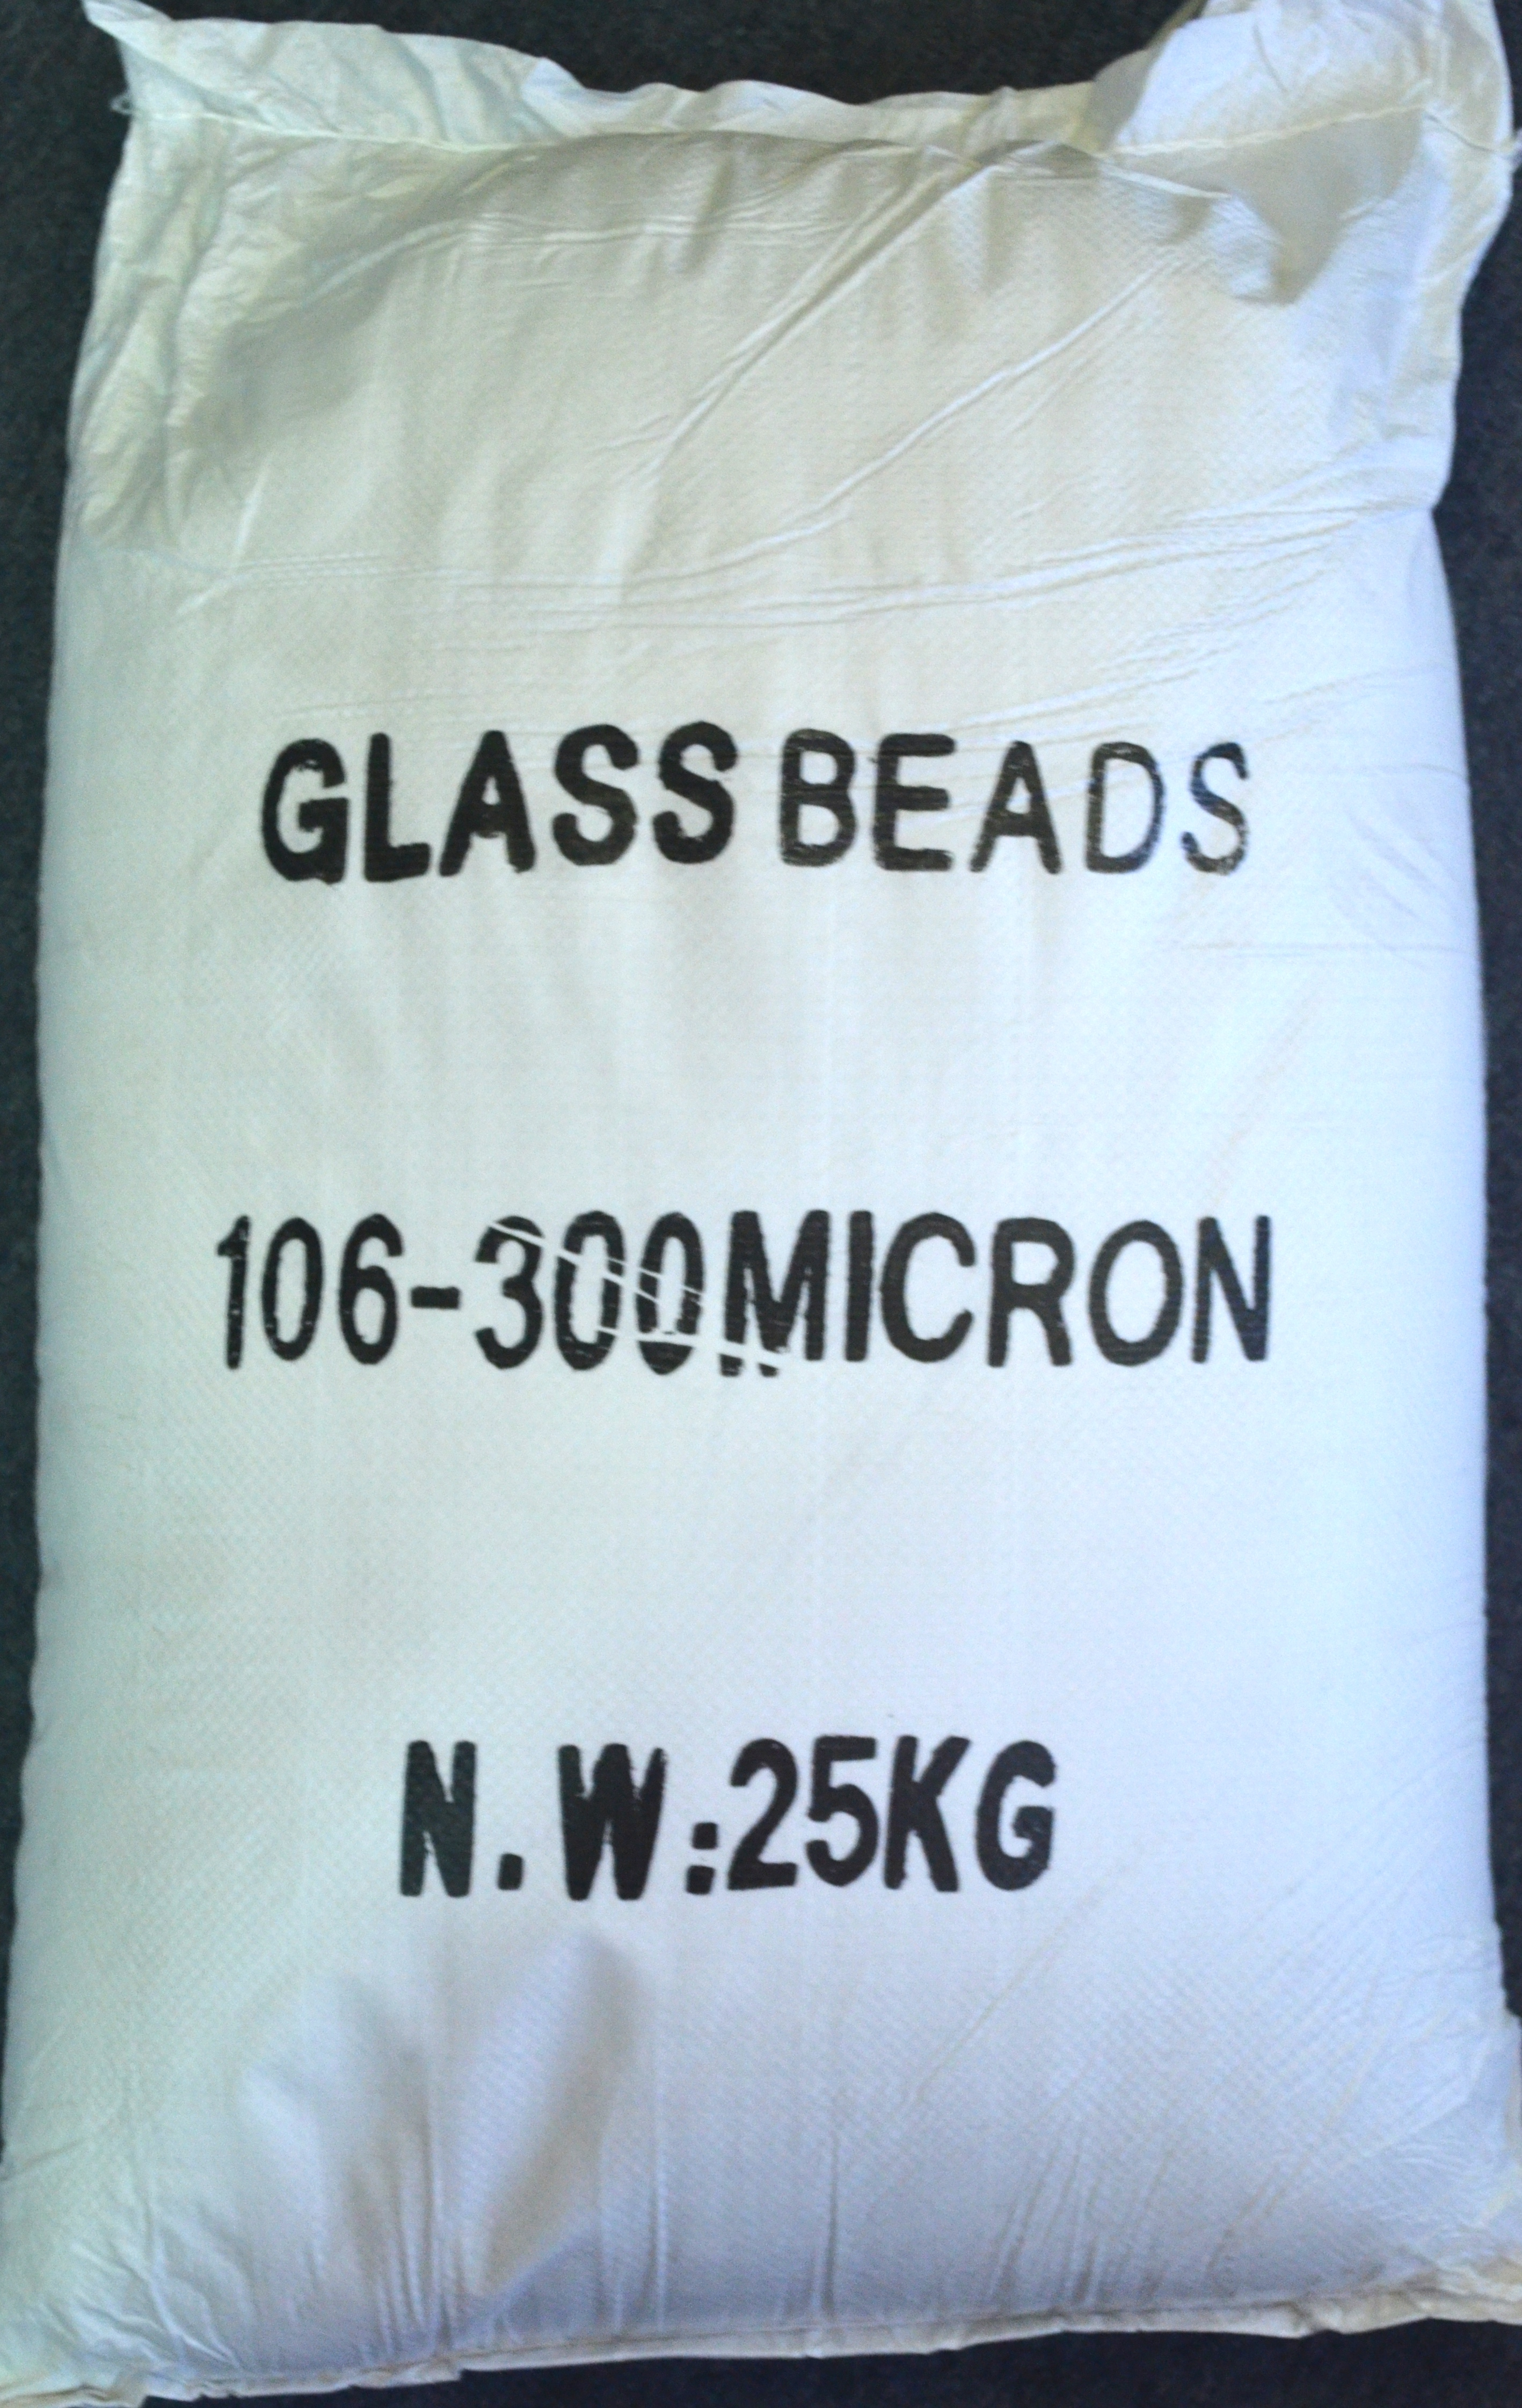 15001 - Glass Beads 106-300 Micron 25kg